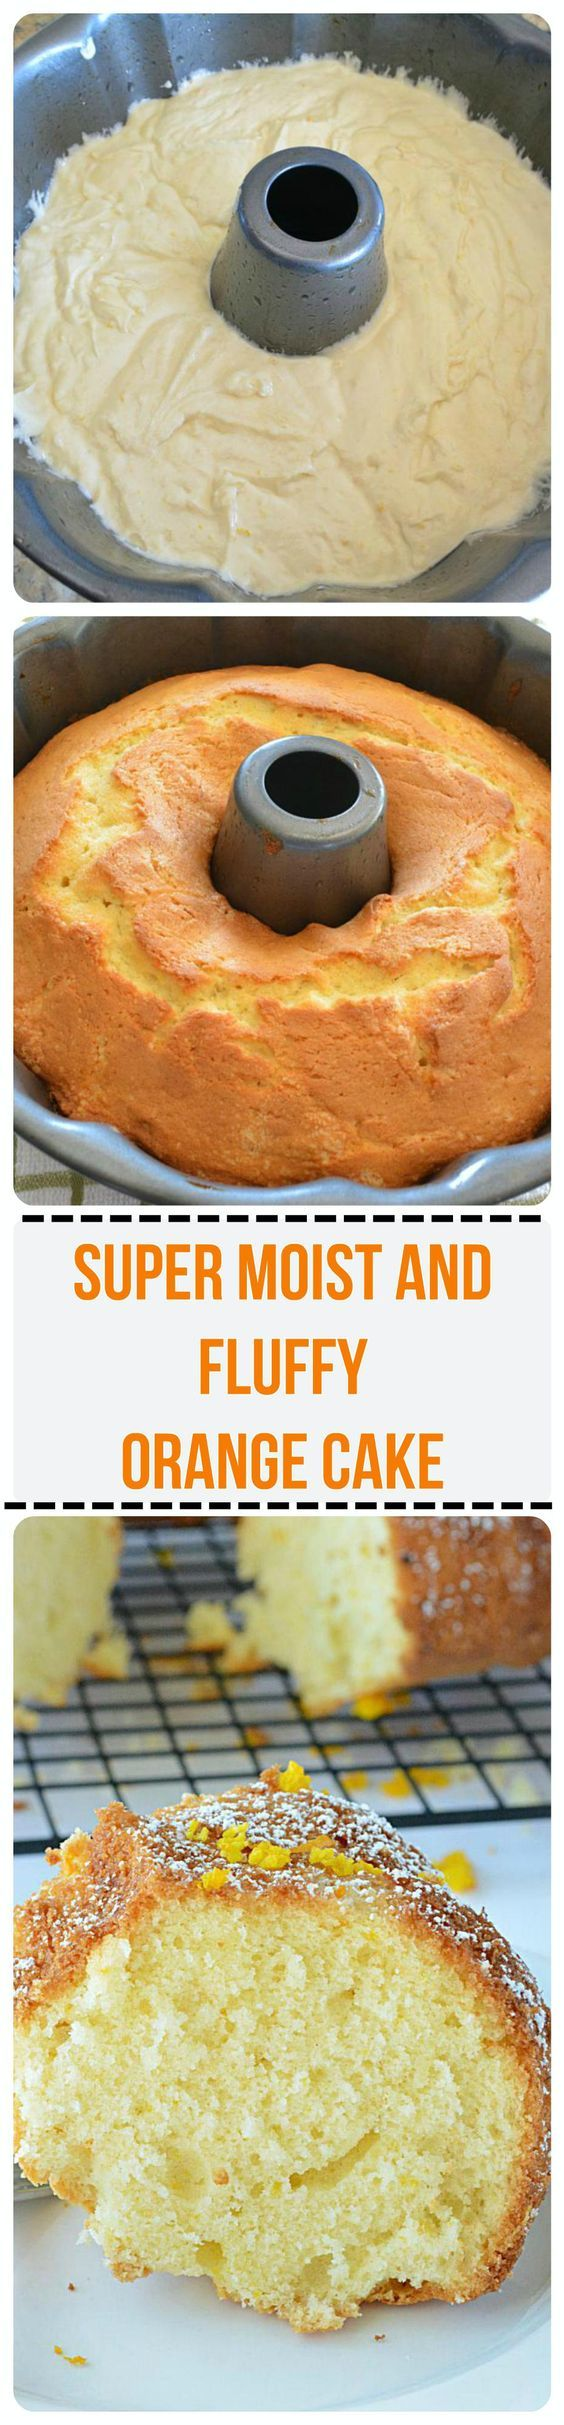 Pinner wrote: Orange Cake Recipe - Incredibly moist orange cake recipe bursting with citrus orange flavor and is soft and fluffy as a cloud!! ruchiskitchen.com: